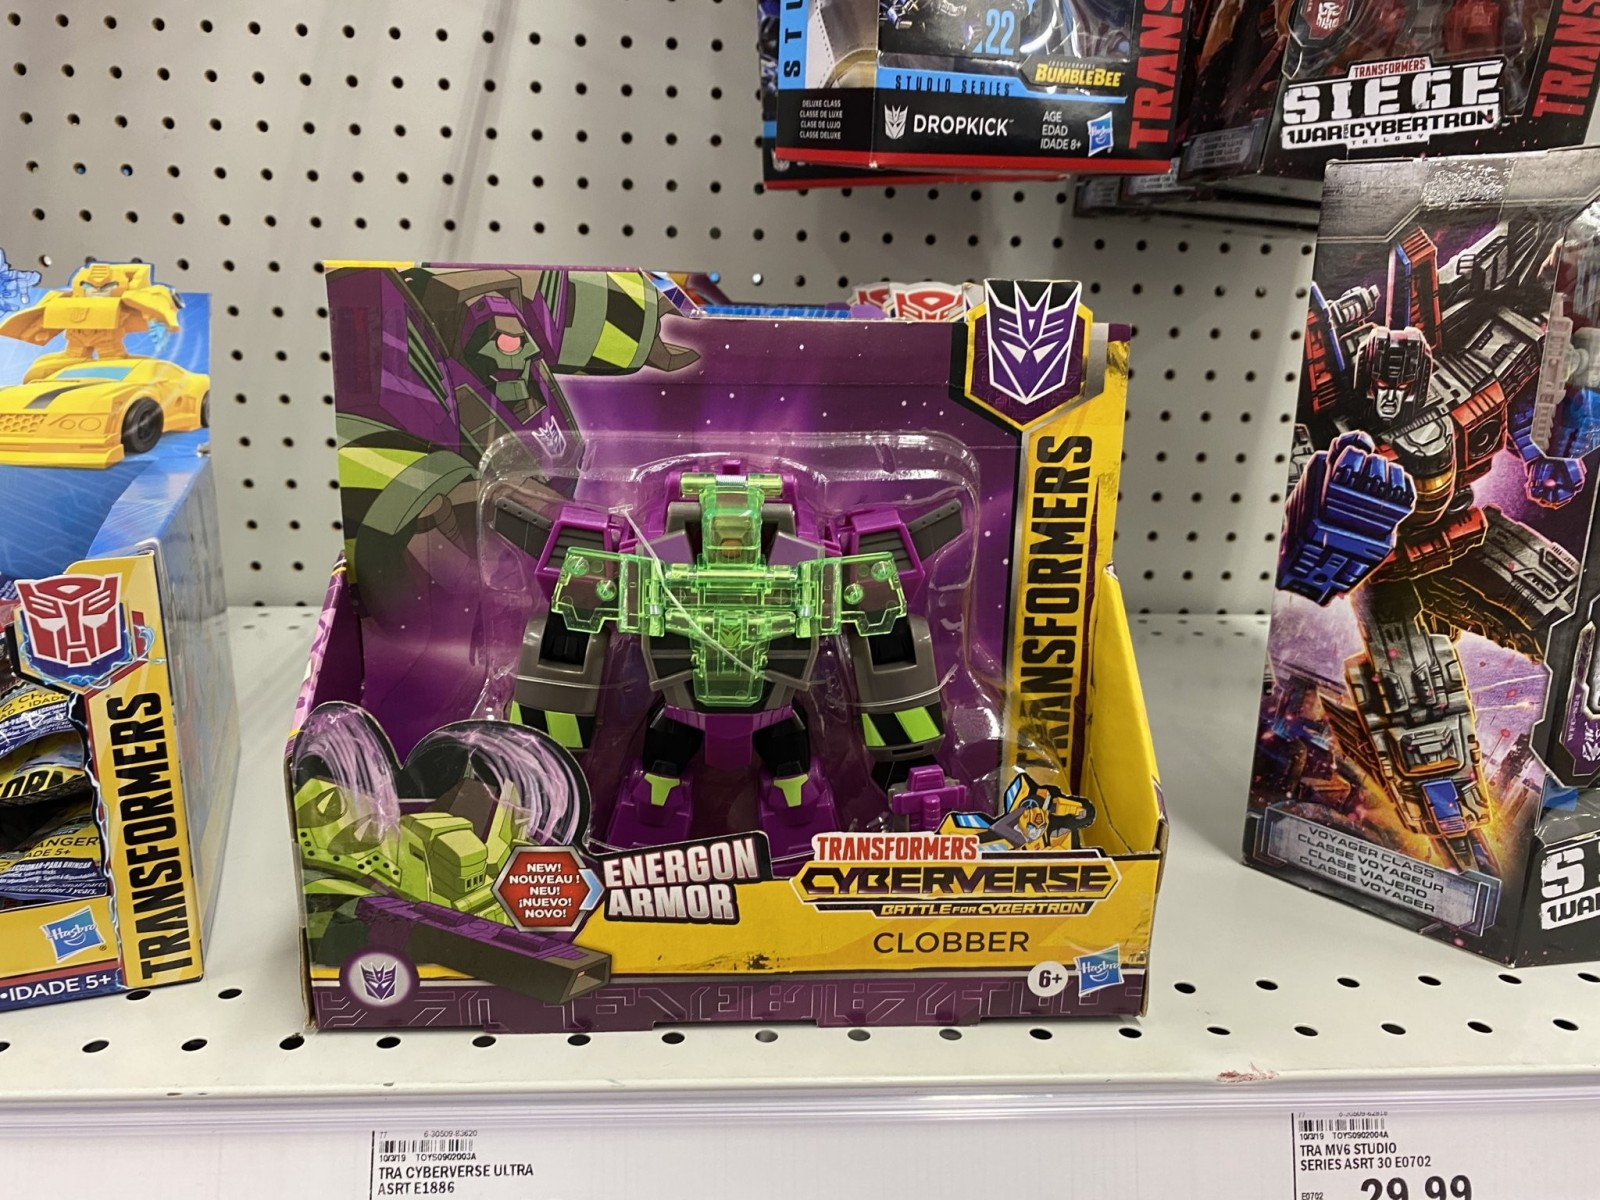 Transformers News: New Transformers Sightings in US with 2020 Deluxes, Ultra Class and Warrior Figures